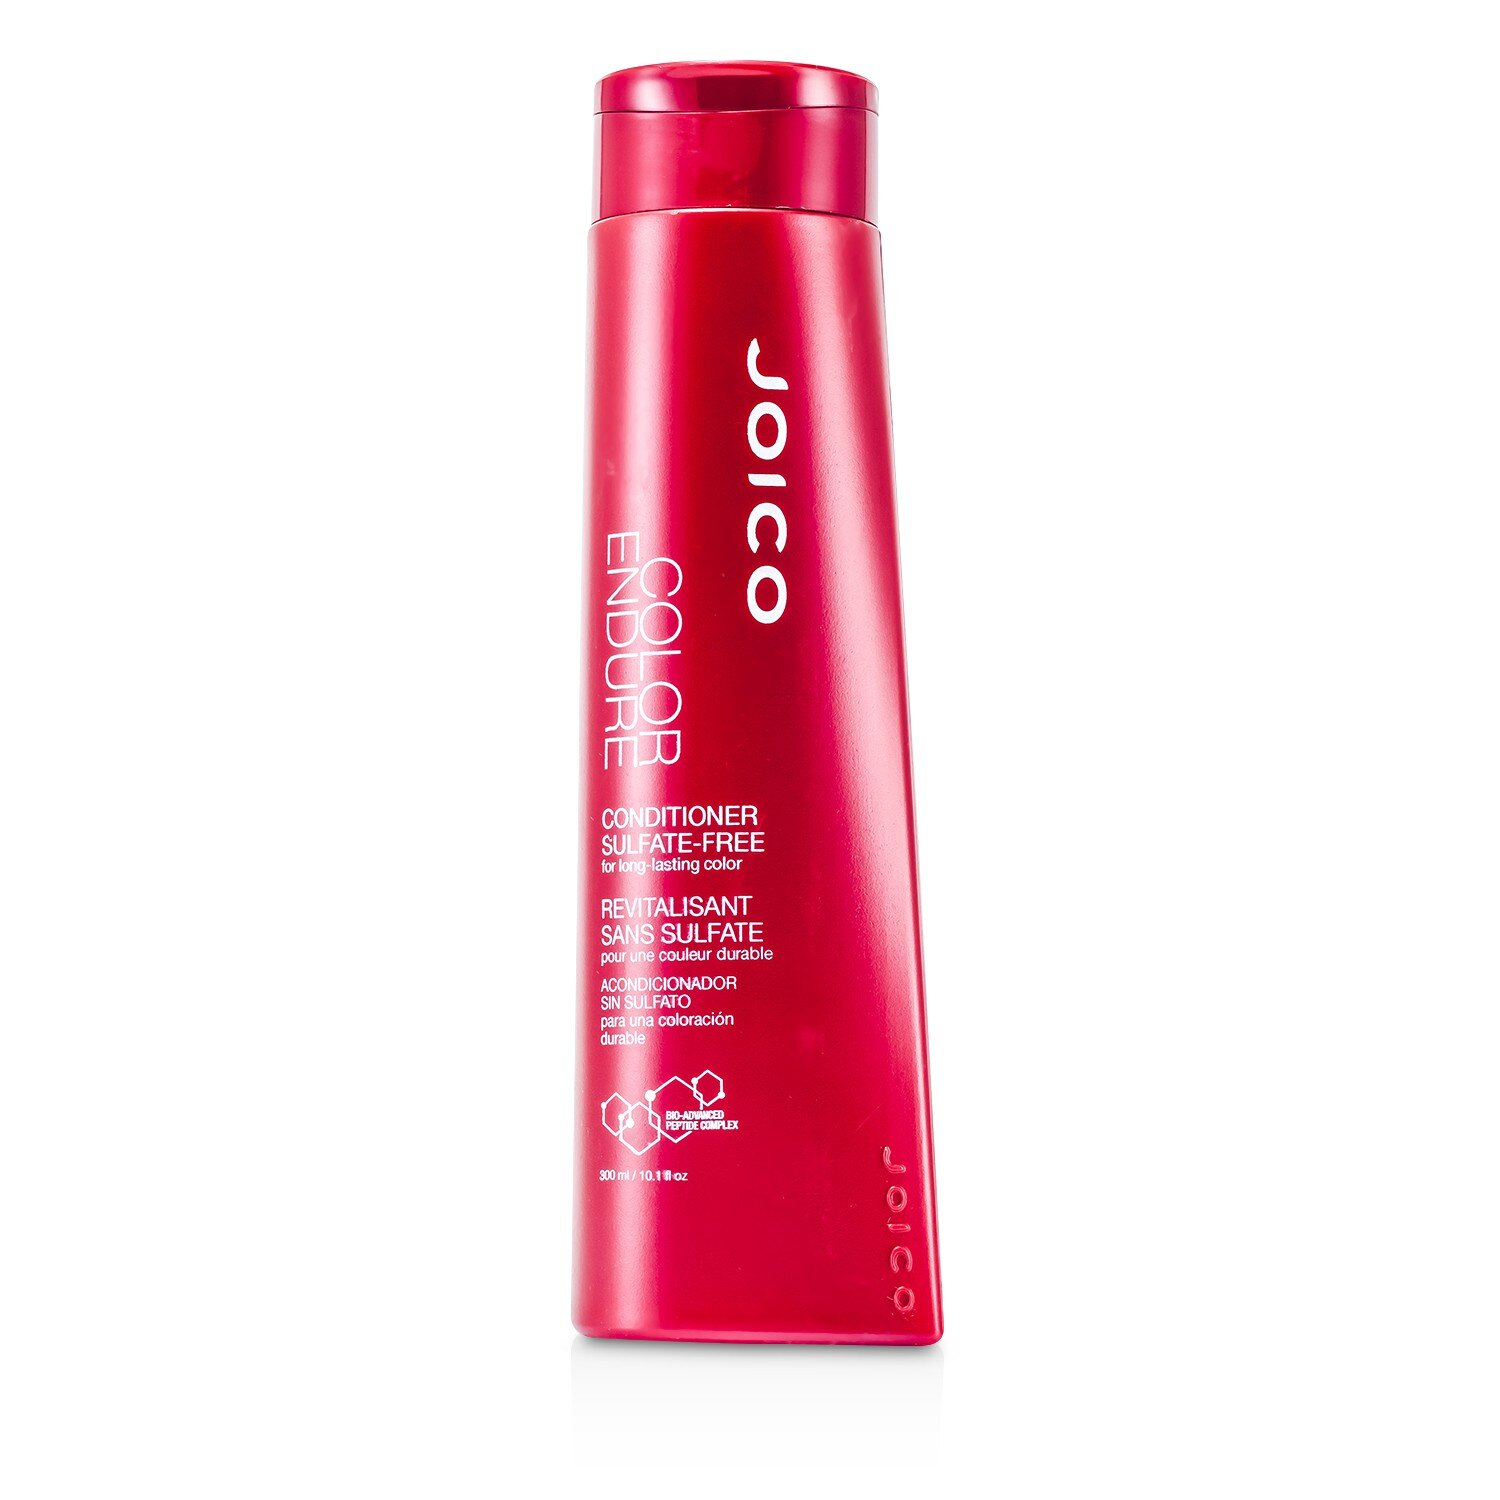 Joico - 煥采重建瞬效髮霜 護髮(護色) Color Endure Sulfate-Free Conditioner